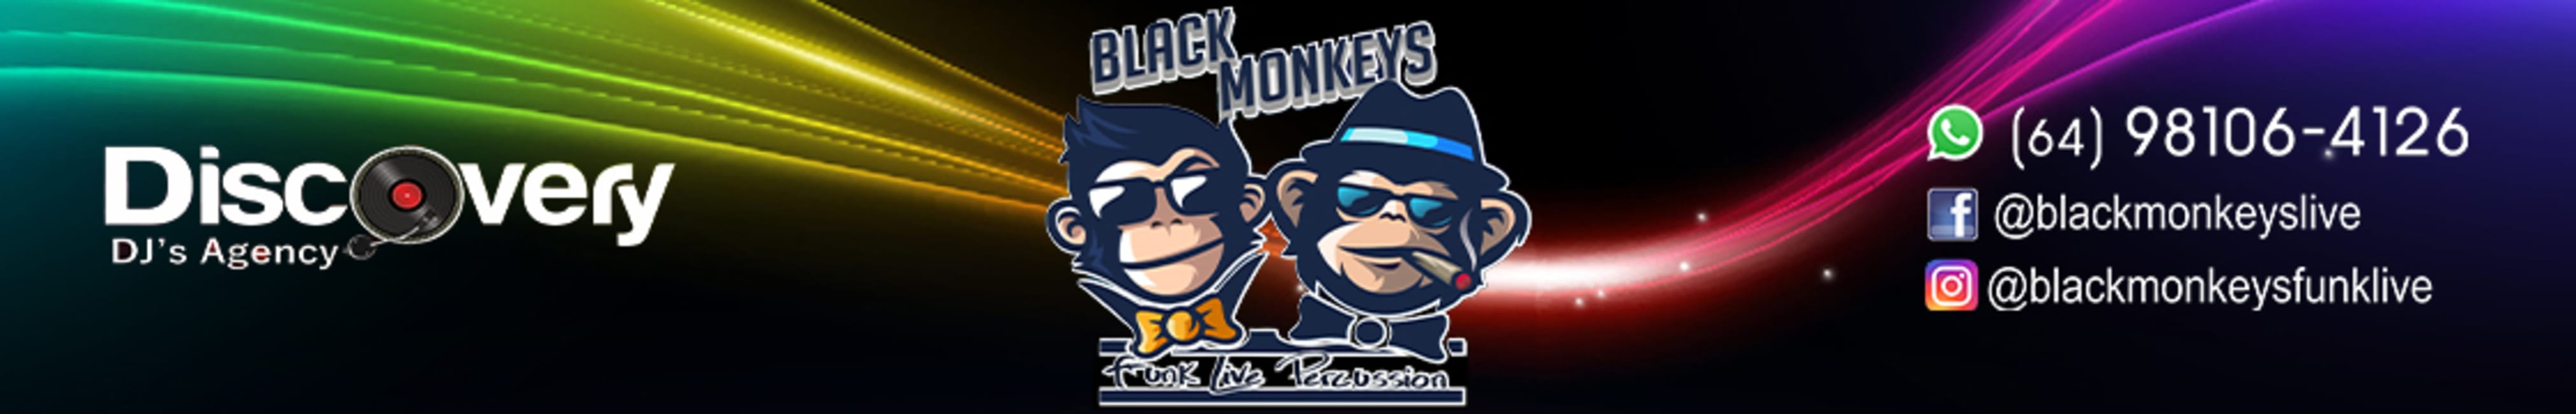 black monkeys